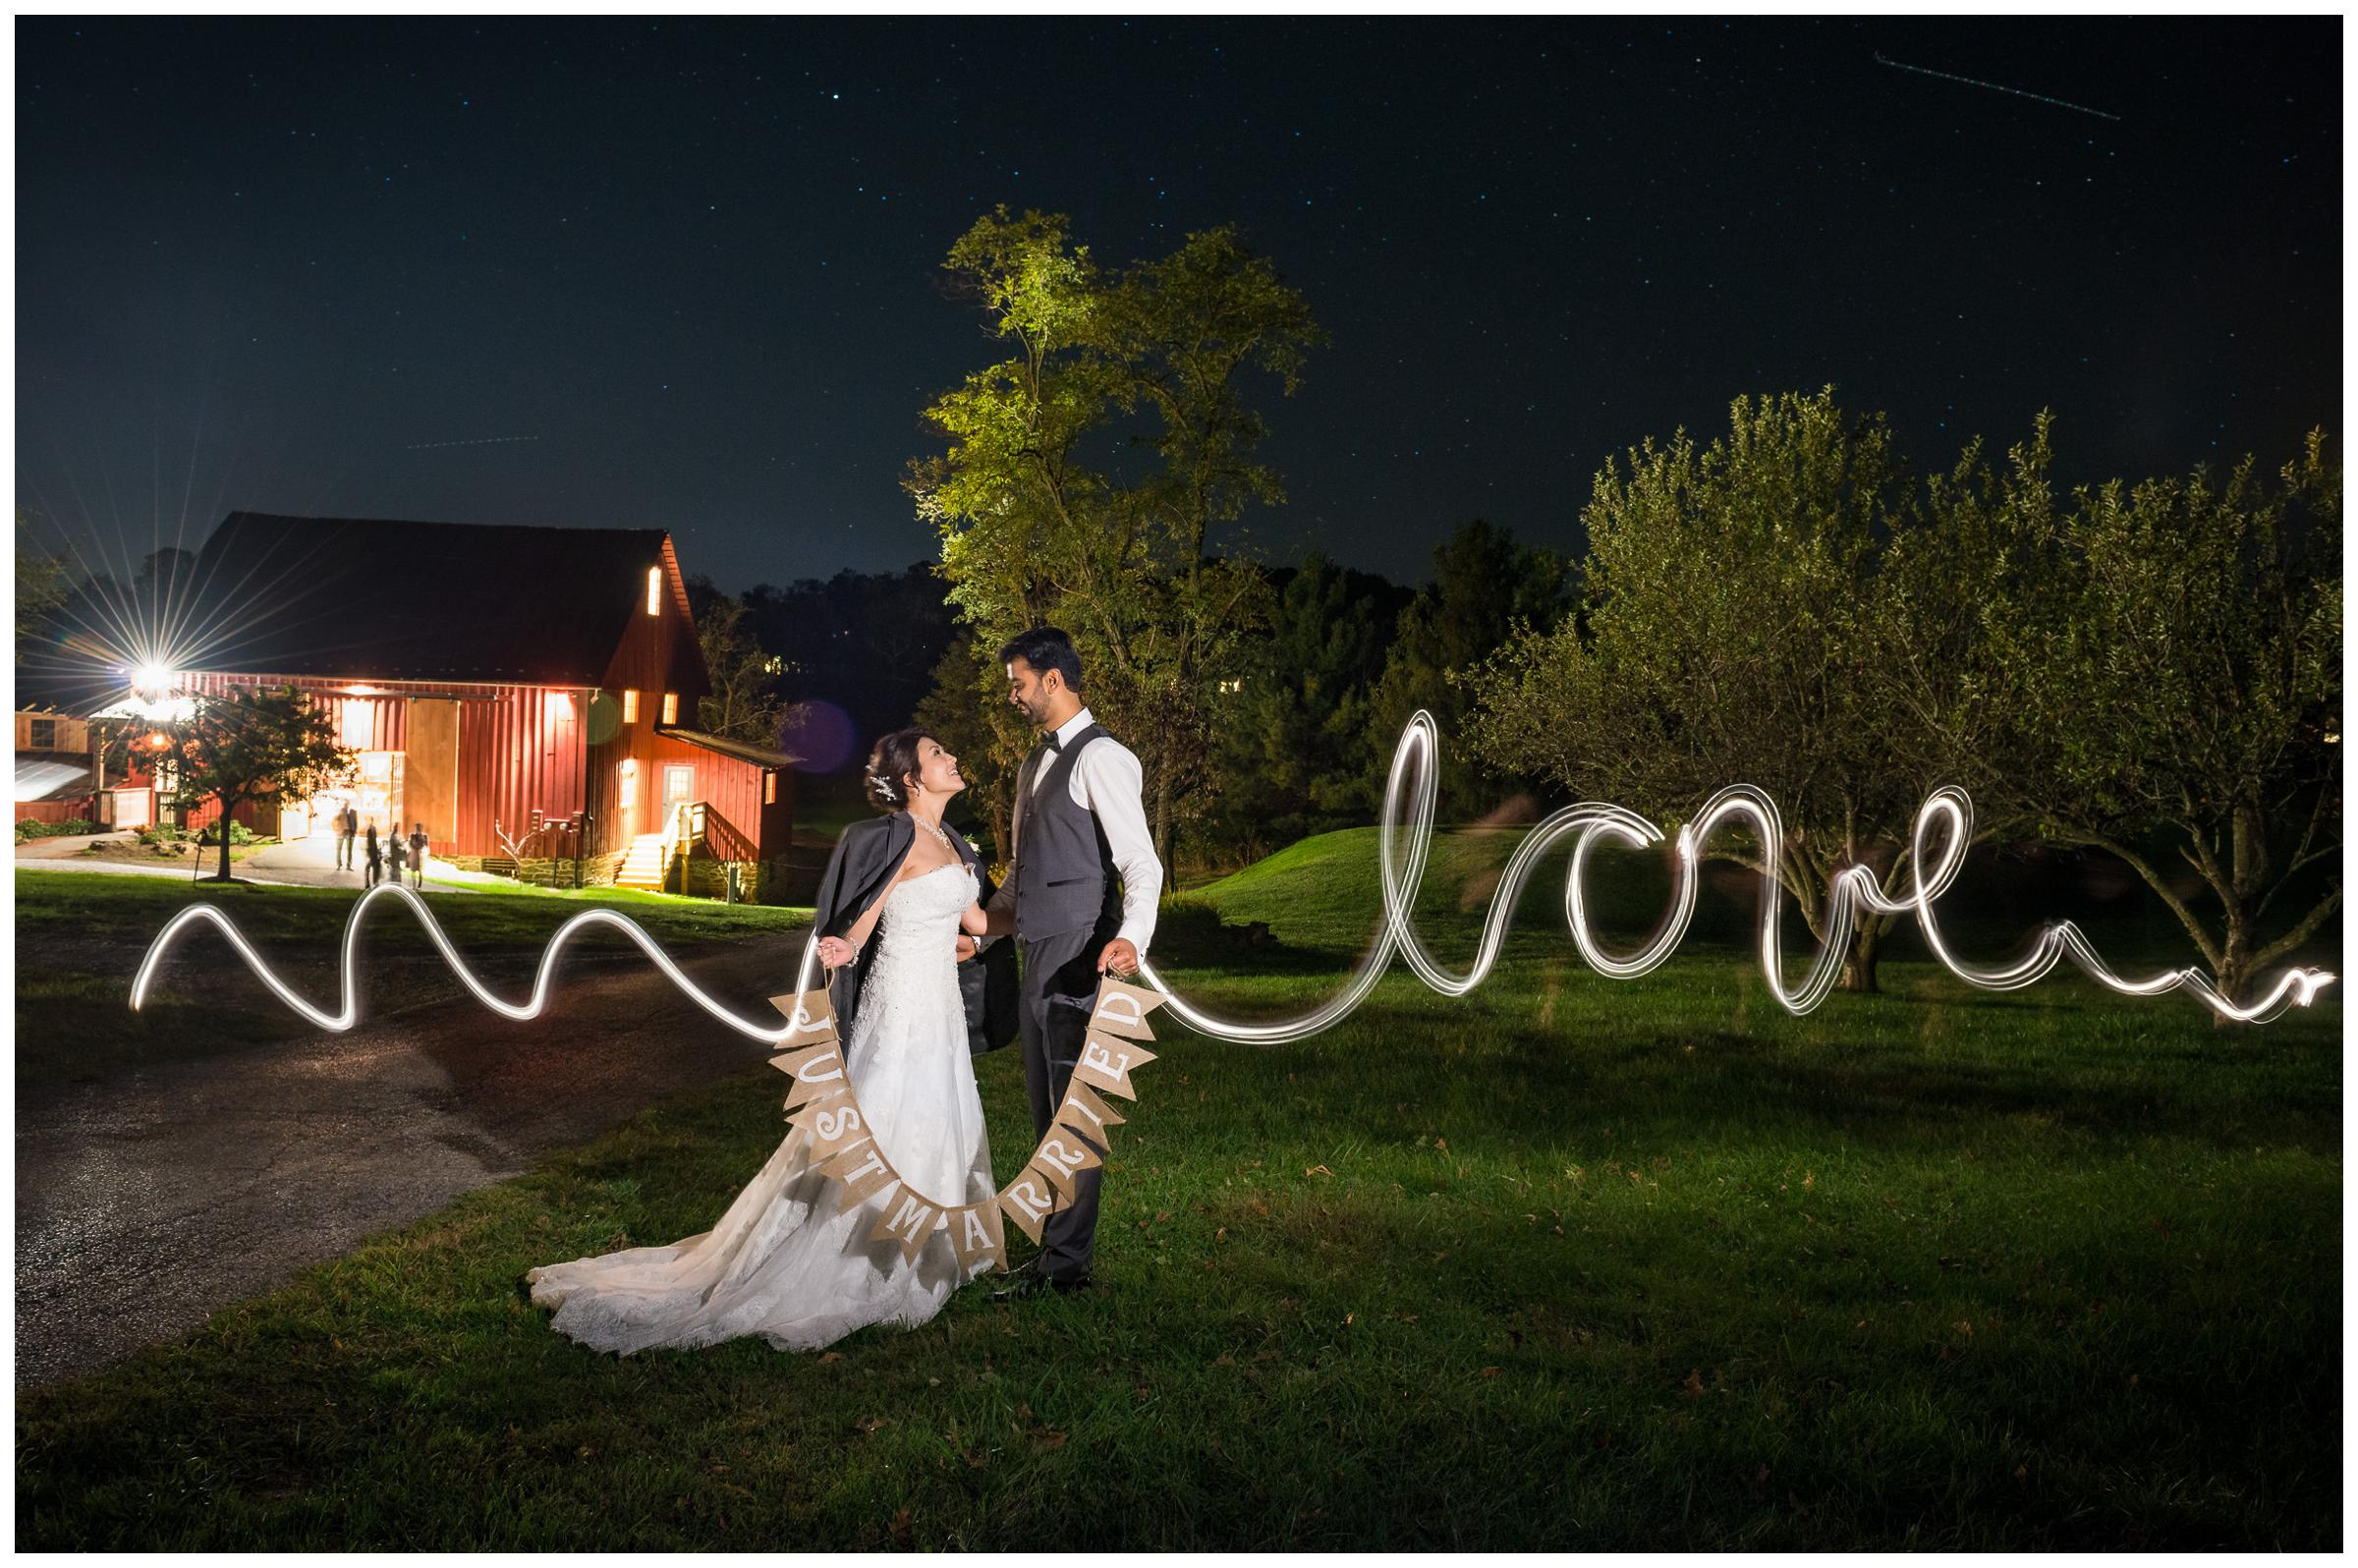 nighttime light painting spelling LOVE with bride and groom